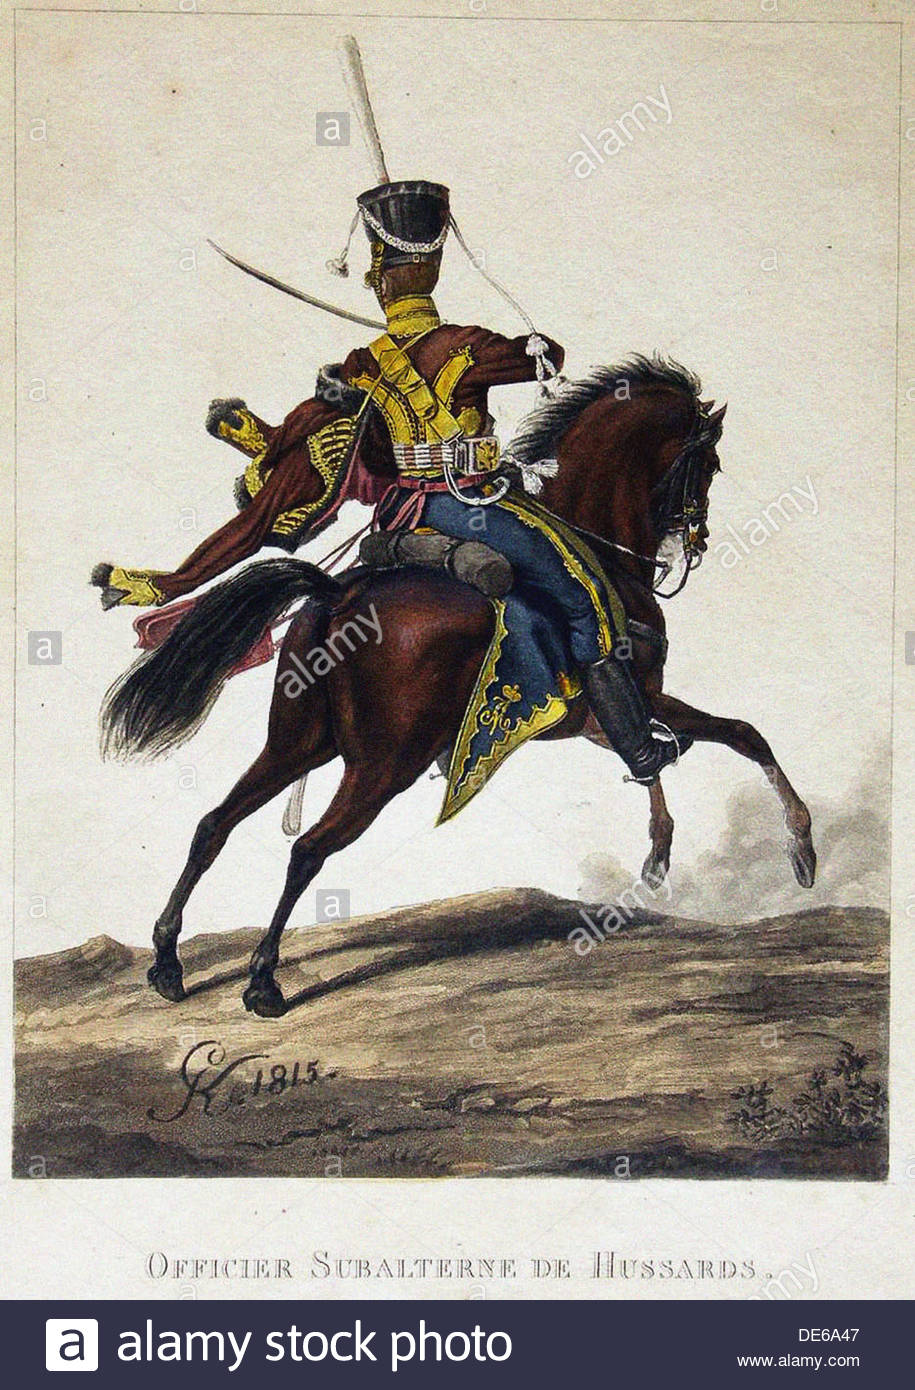 Uniform For Chief Officer Of The Life-guard Achtyrsky Hussar Regiment, 1818. Artist: Anonymous - Stock Image